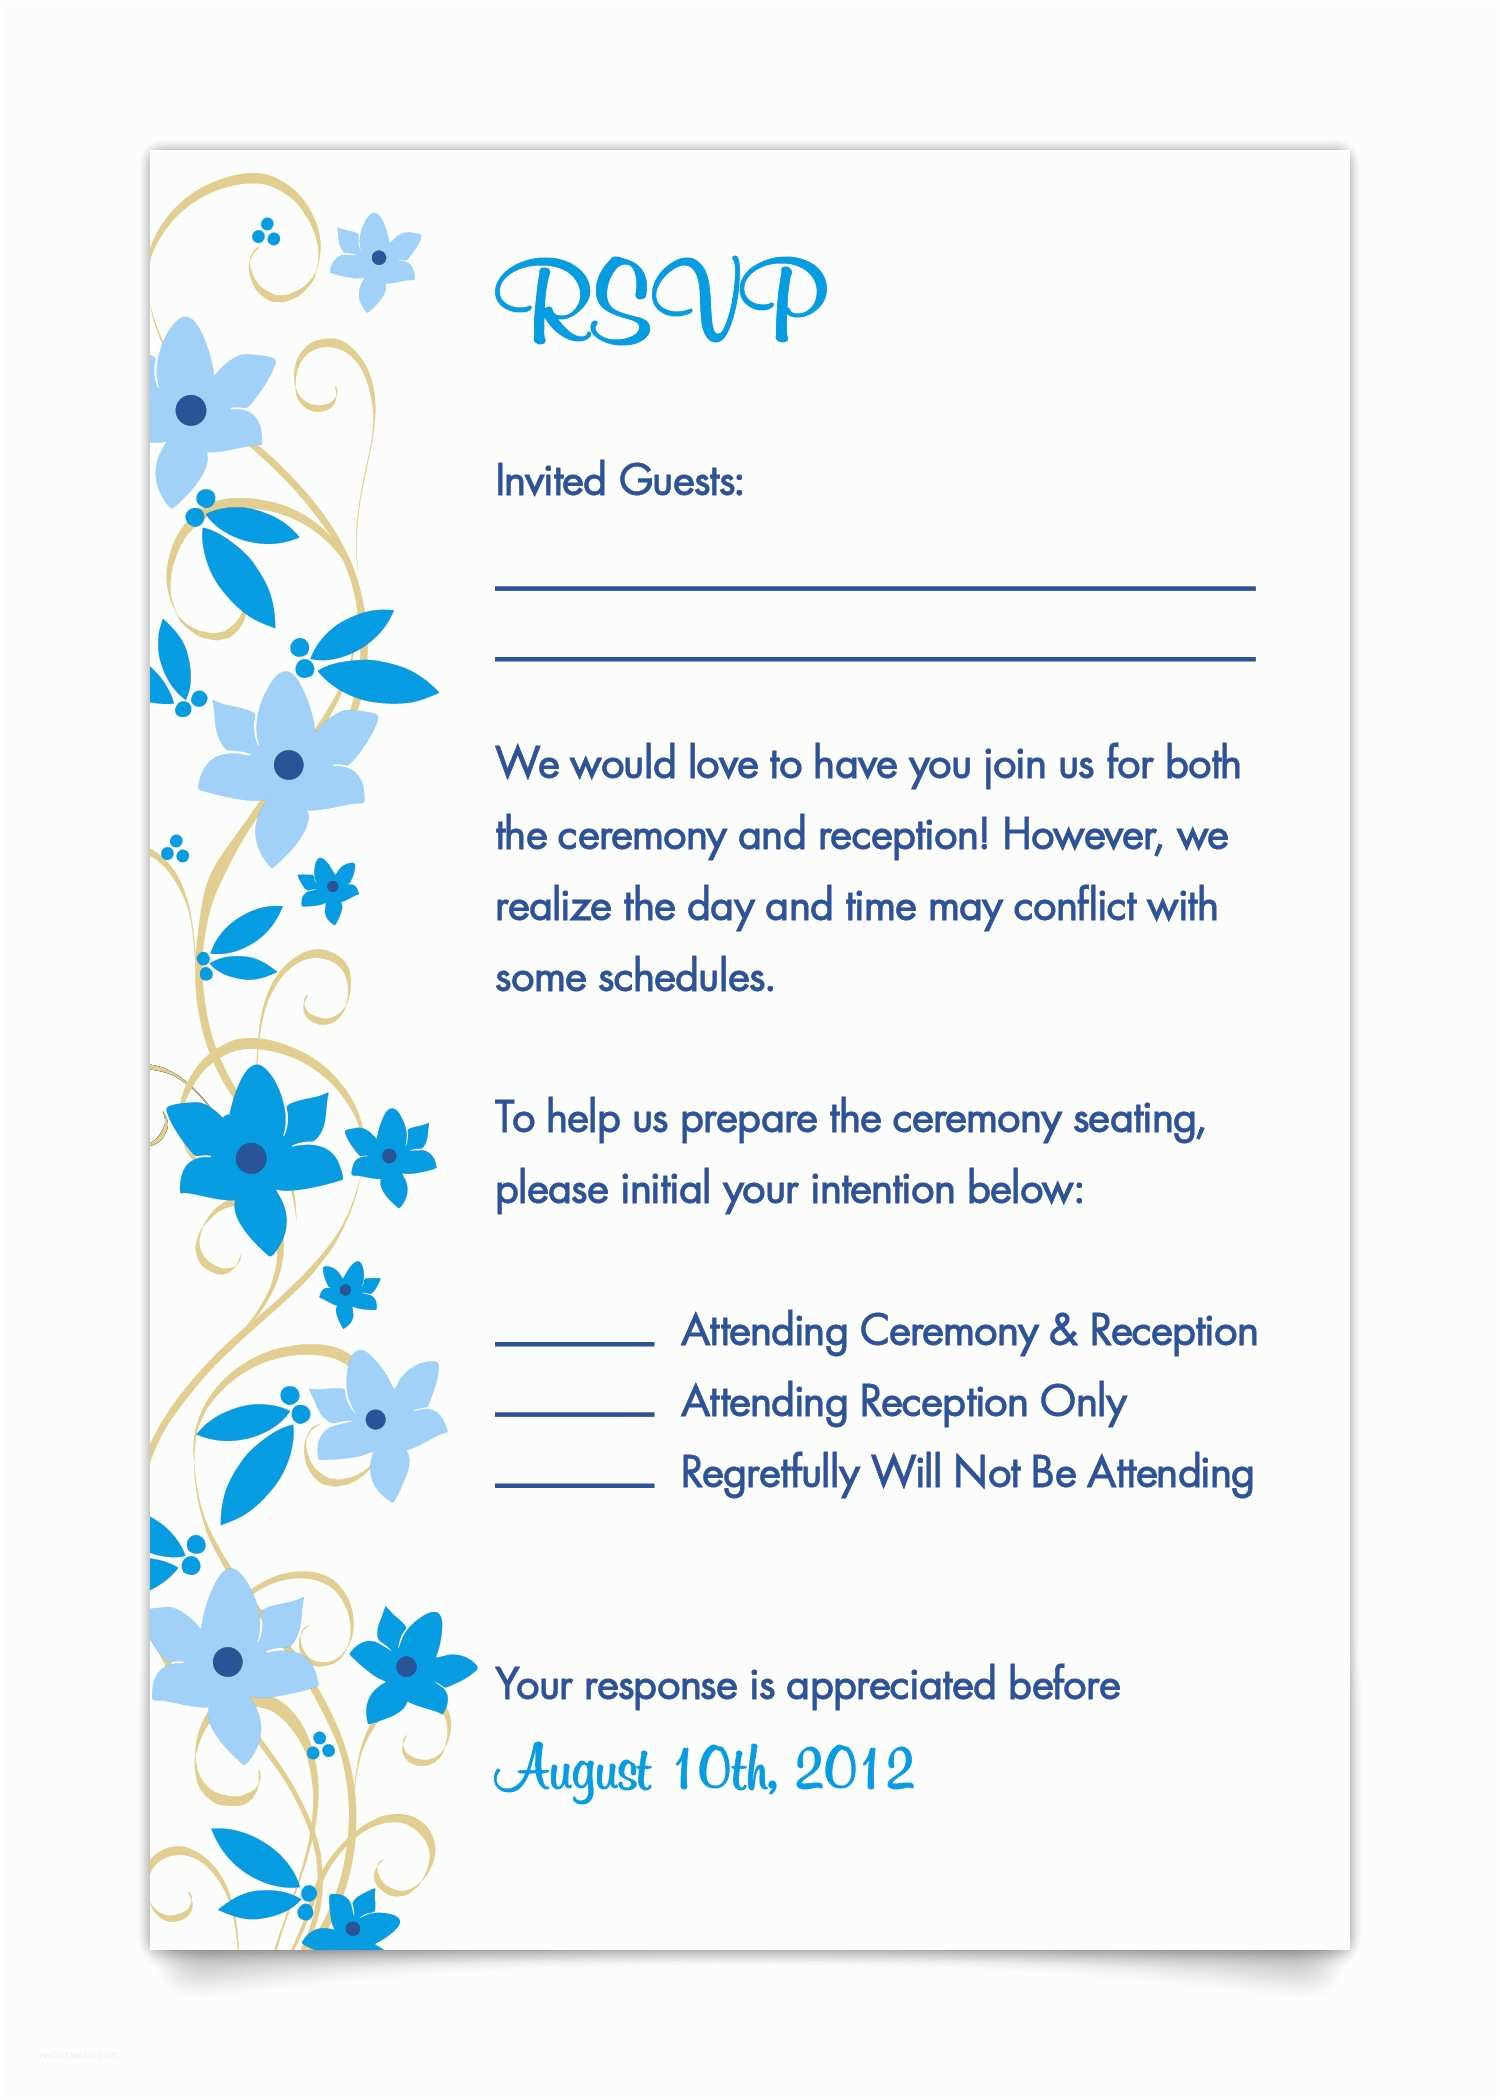 How to Rsvp for Wedding Invitation Adults Ly Wedding Wordingadults Ly Wedding Wording